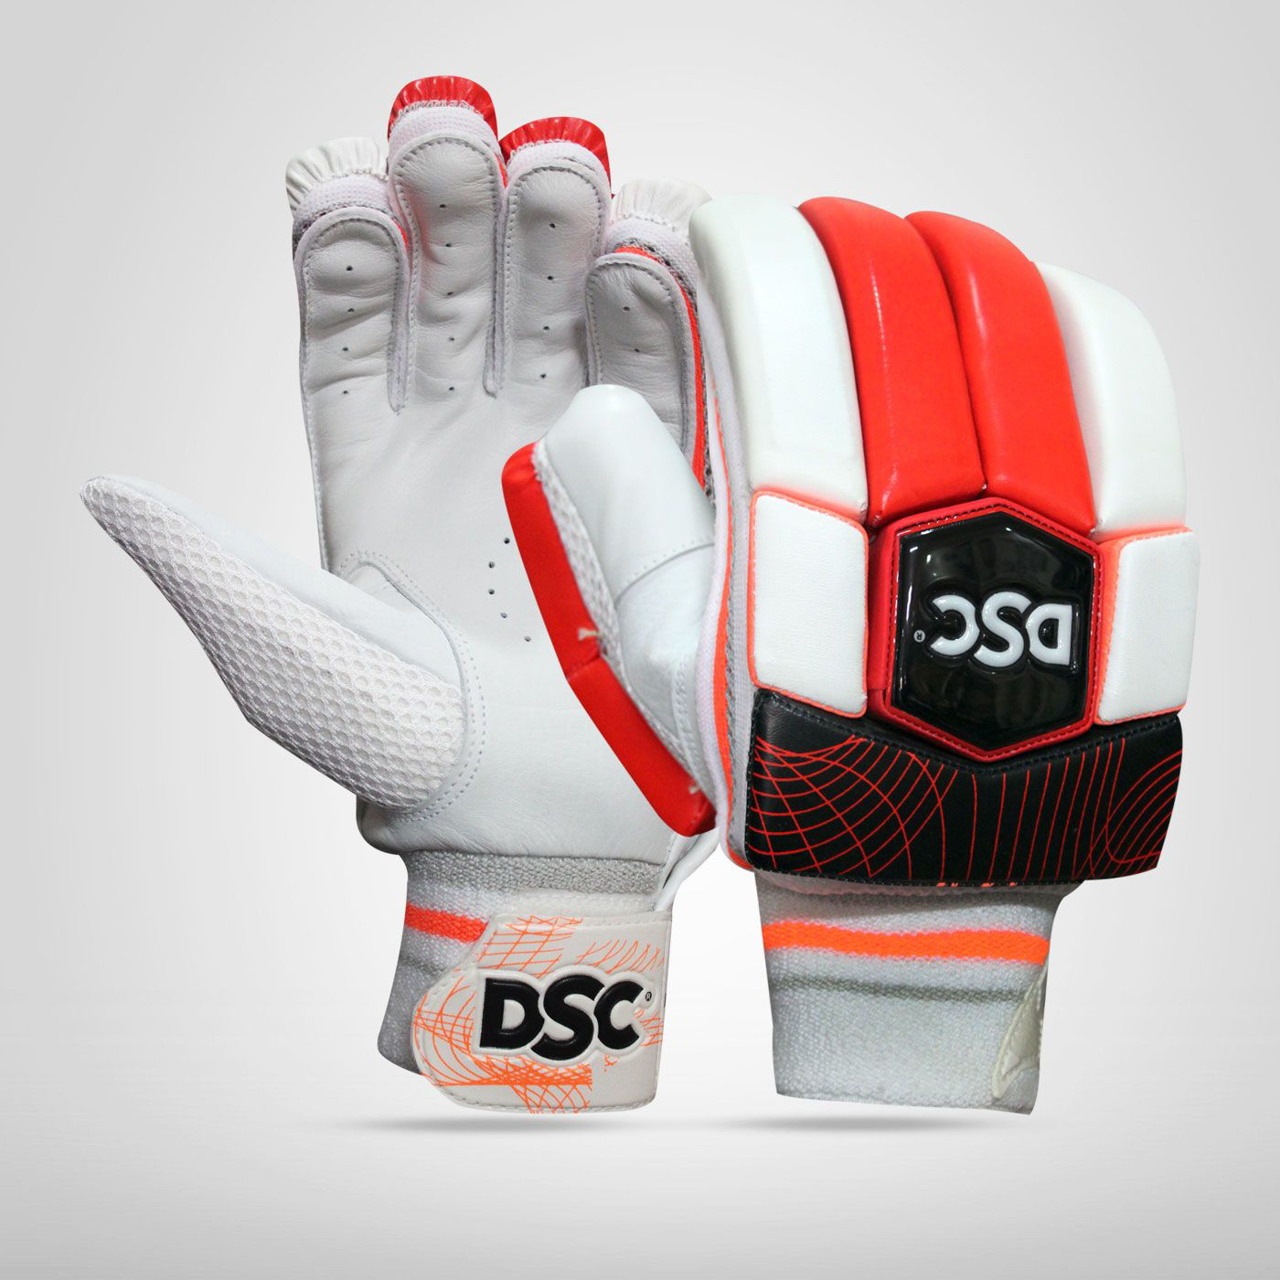 Picture of DSC Batting Gloves INTENSE RAGE RH